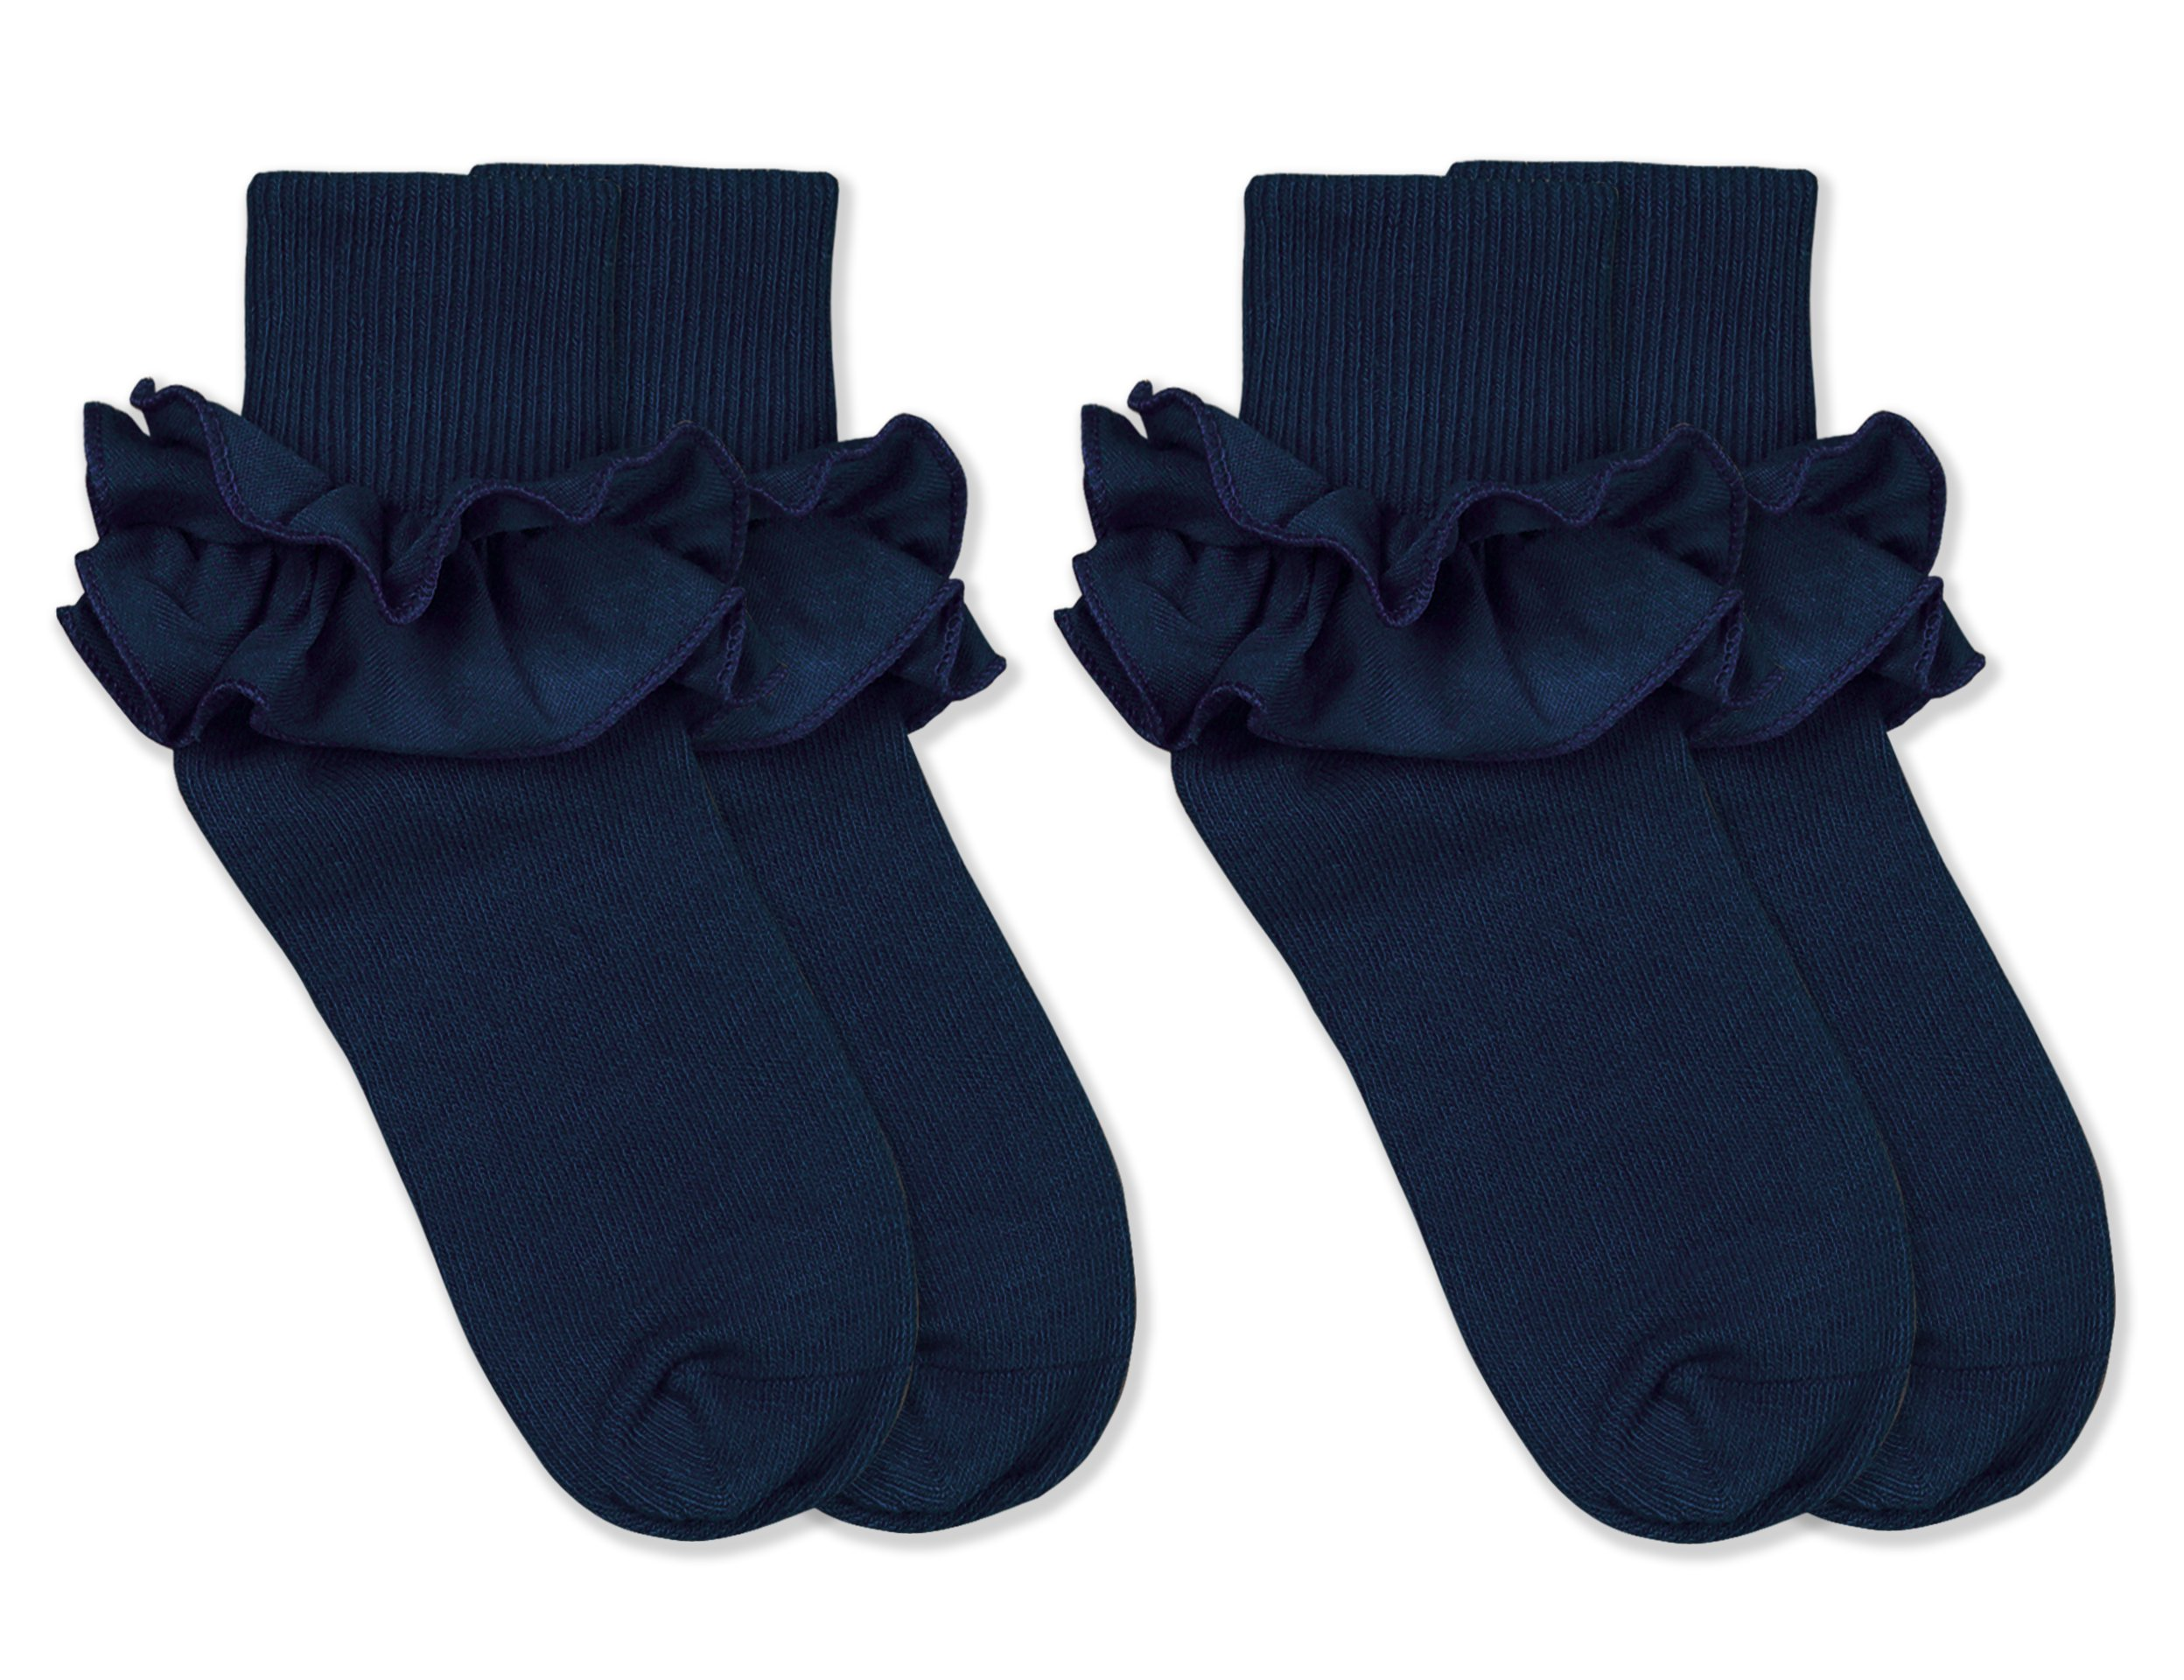 Jefferies Socks Girls Misty Ruffle Turn Cuff Socks 2 Pair Pack (S - USA Shoe 9-1 - Age 3-7 Years, Navy)